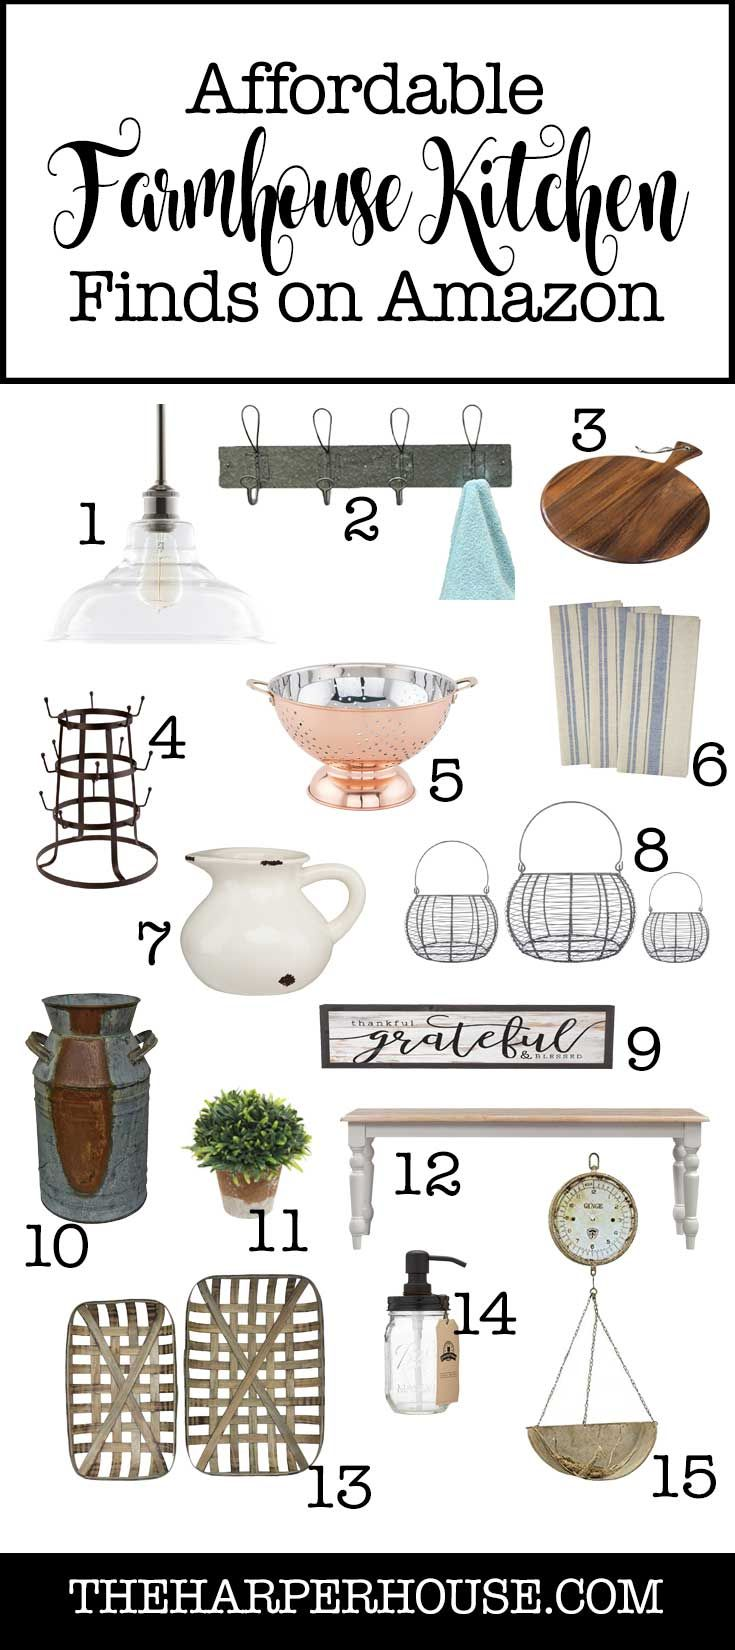 Find awesome affordable farmhouse kitchen decor on Amazon. Add character & farmhouse style without breaking the bank!